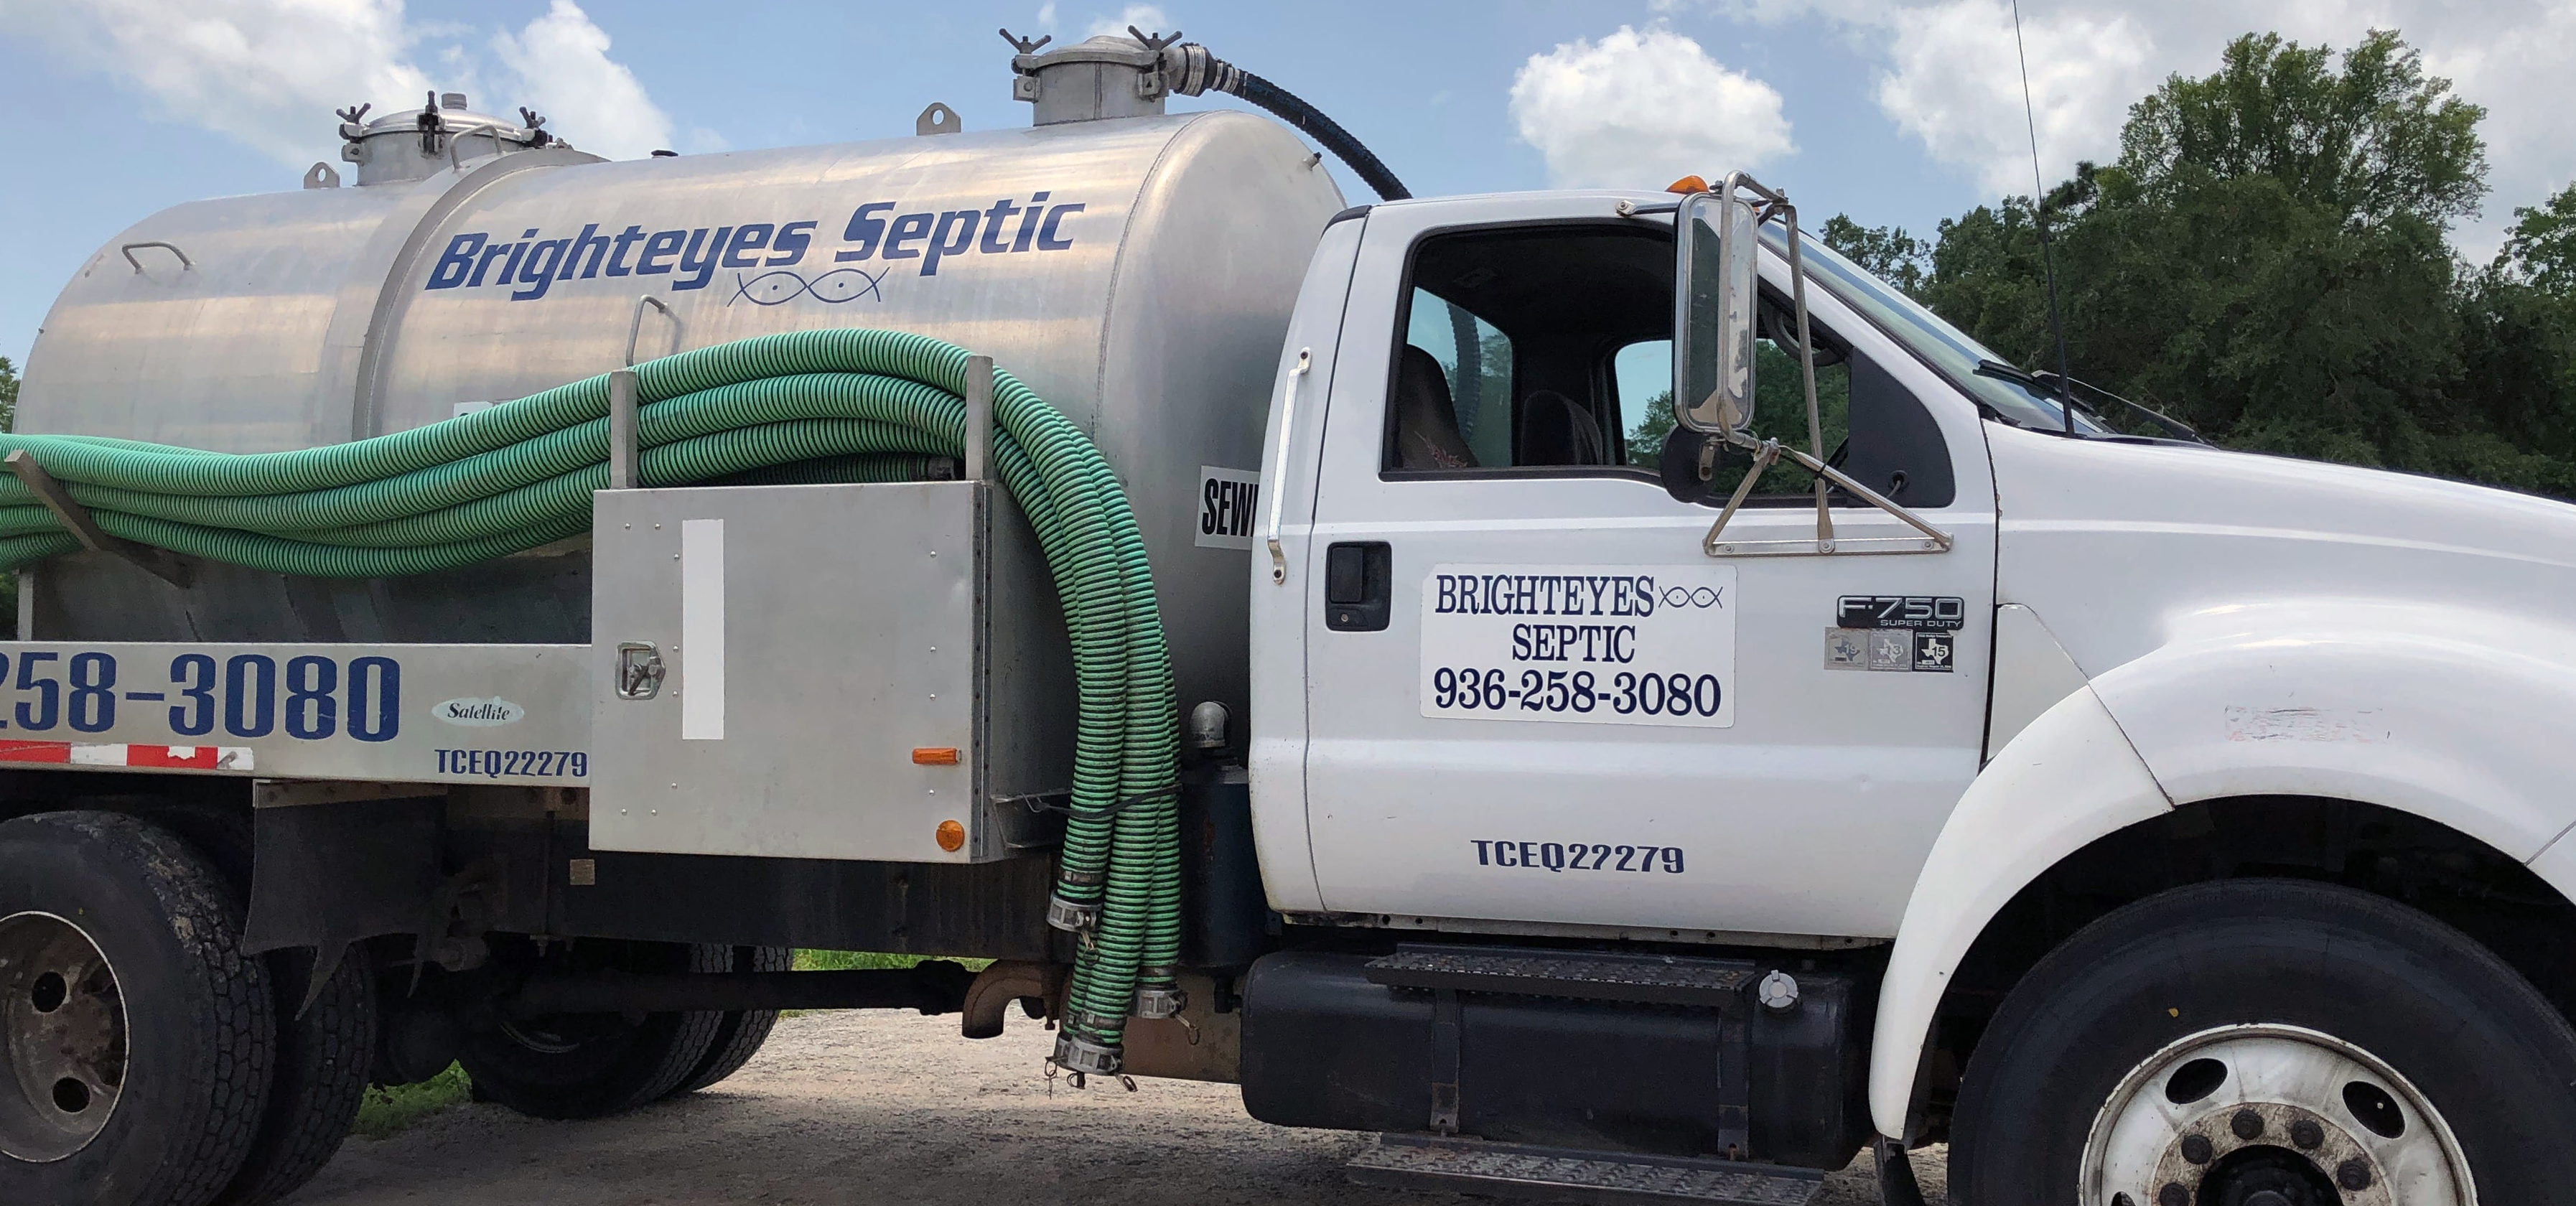 Brighteyes Septic Truck